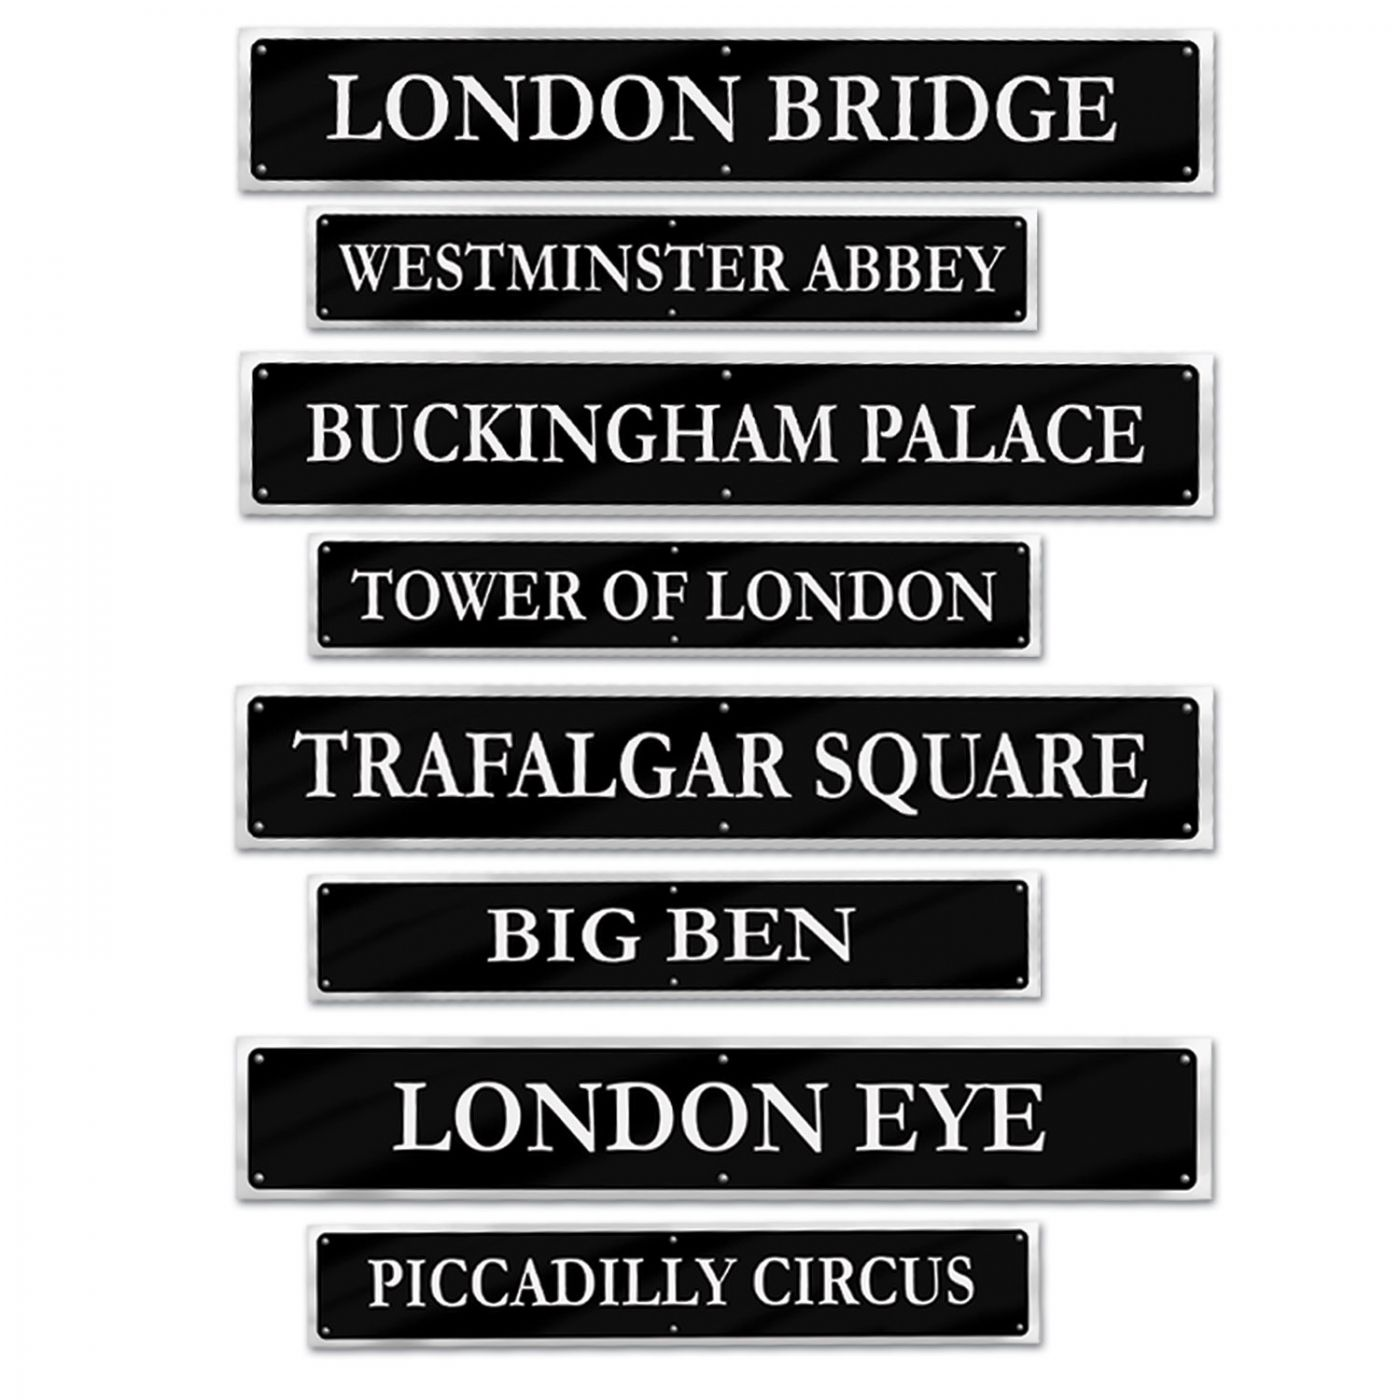 British Street Sign Cutouts image